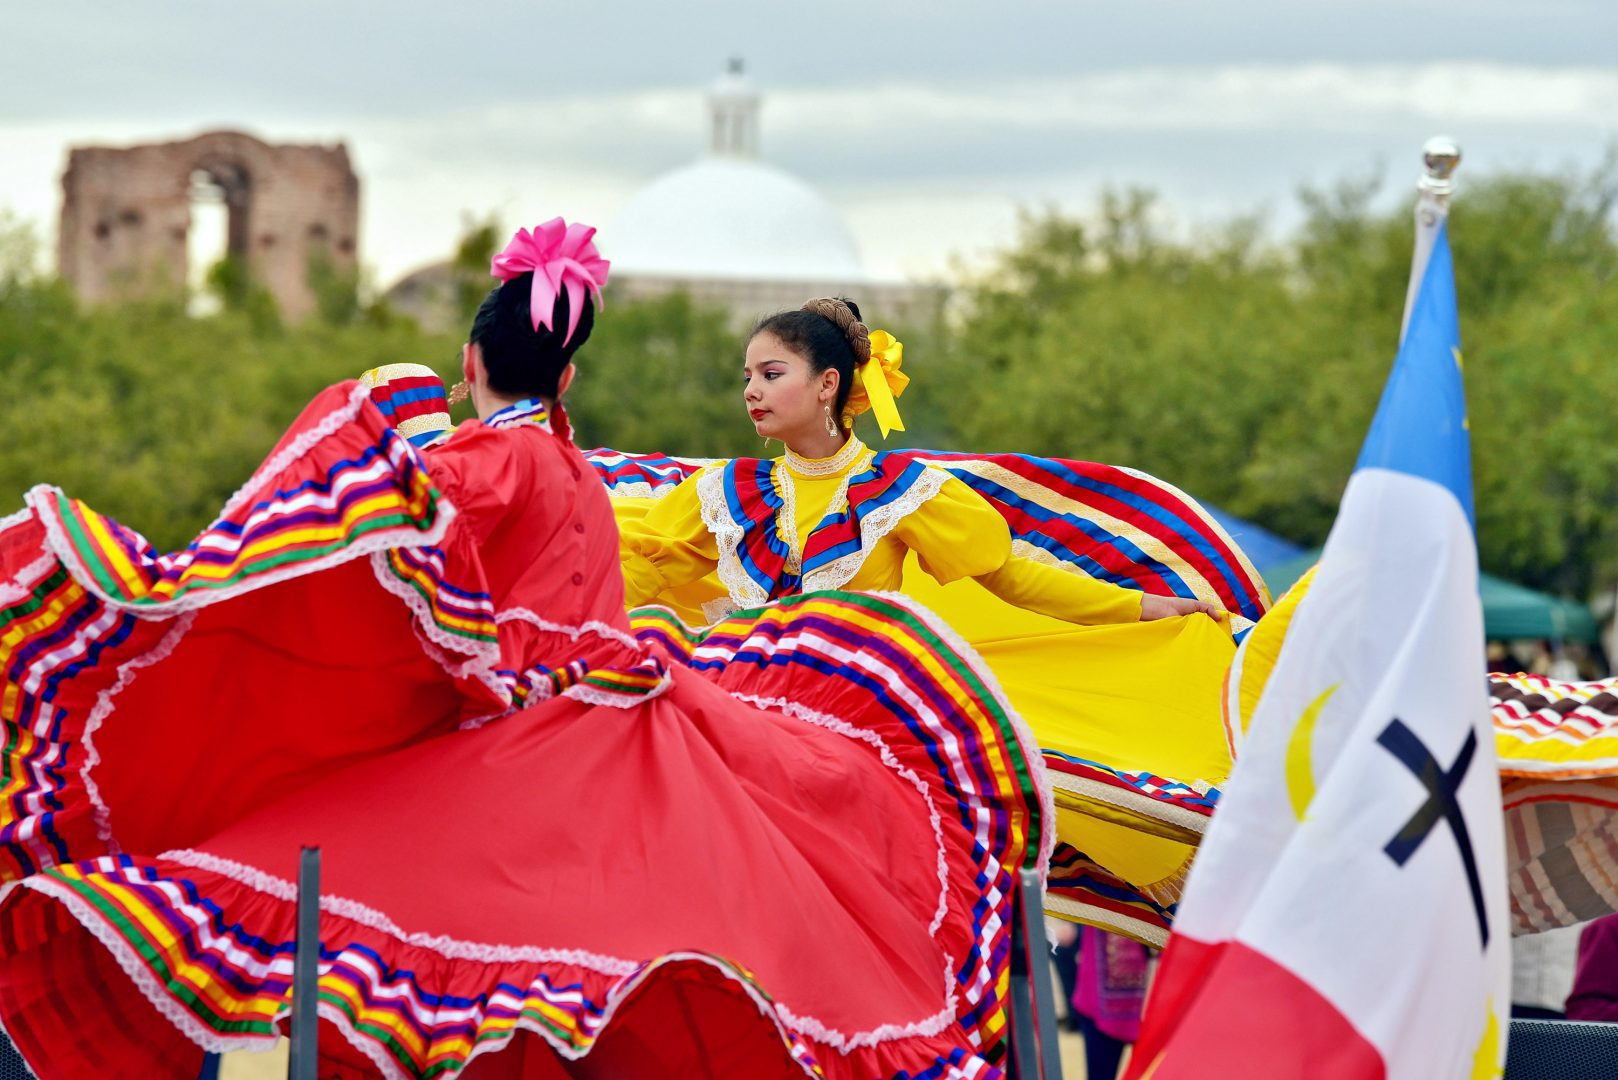 Hispanic dancers in colorful dresses in from of Tumacácori mission